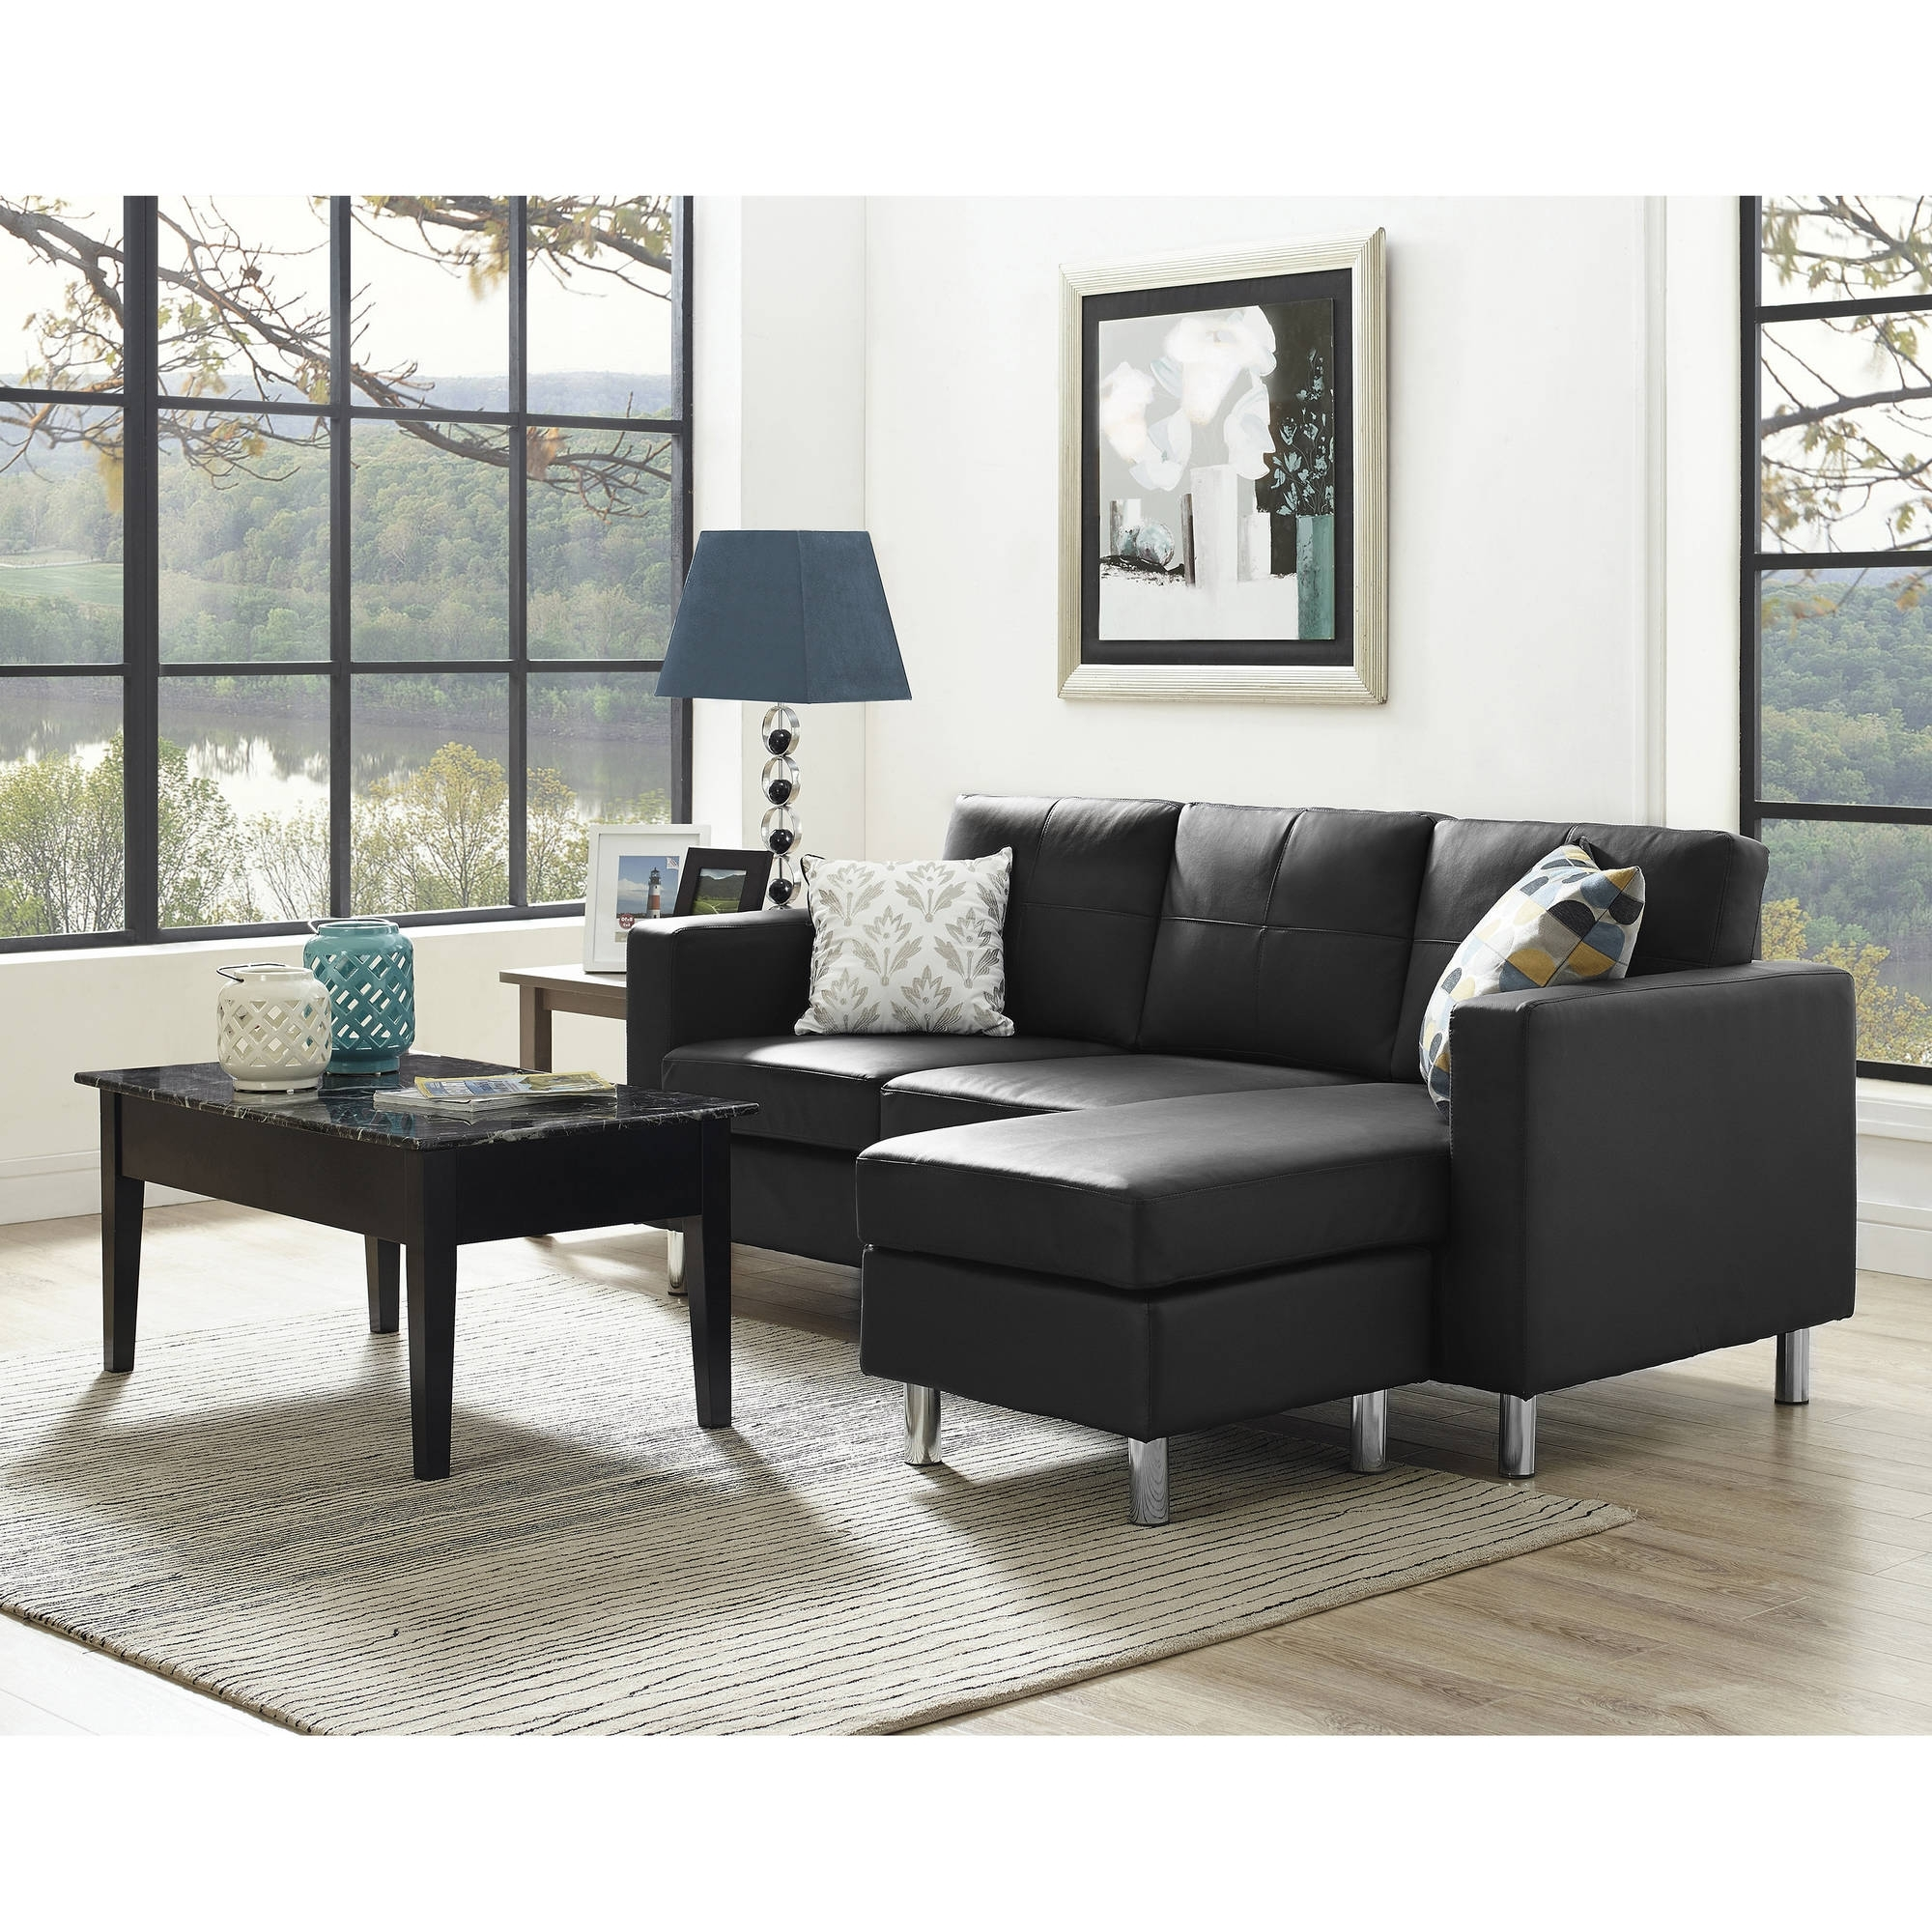 Newest Small Sectional Sofas With Chaise And Ottoman Within Dorel Living Small Spaces Configurable Sectional Sofa, Multiple (View 8 of 15)